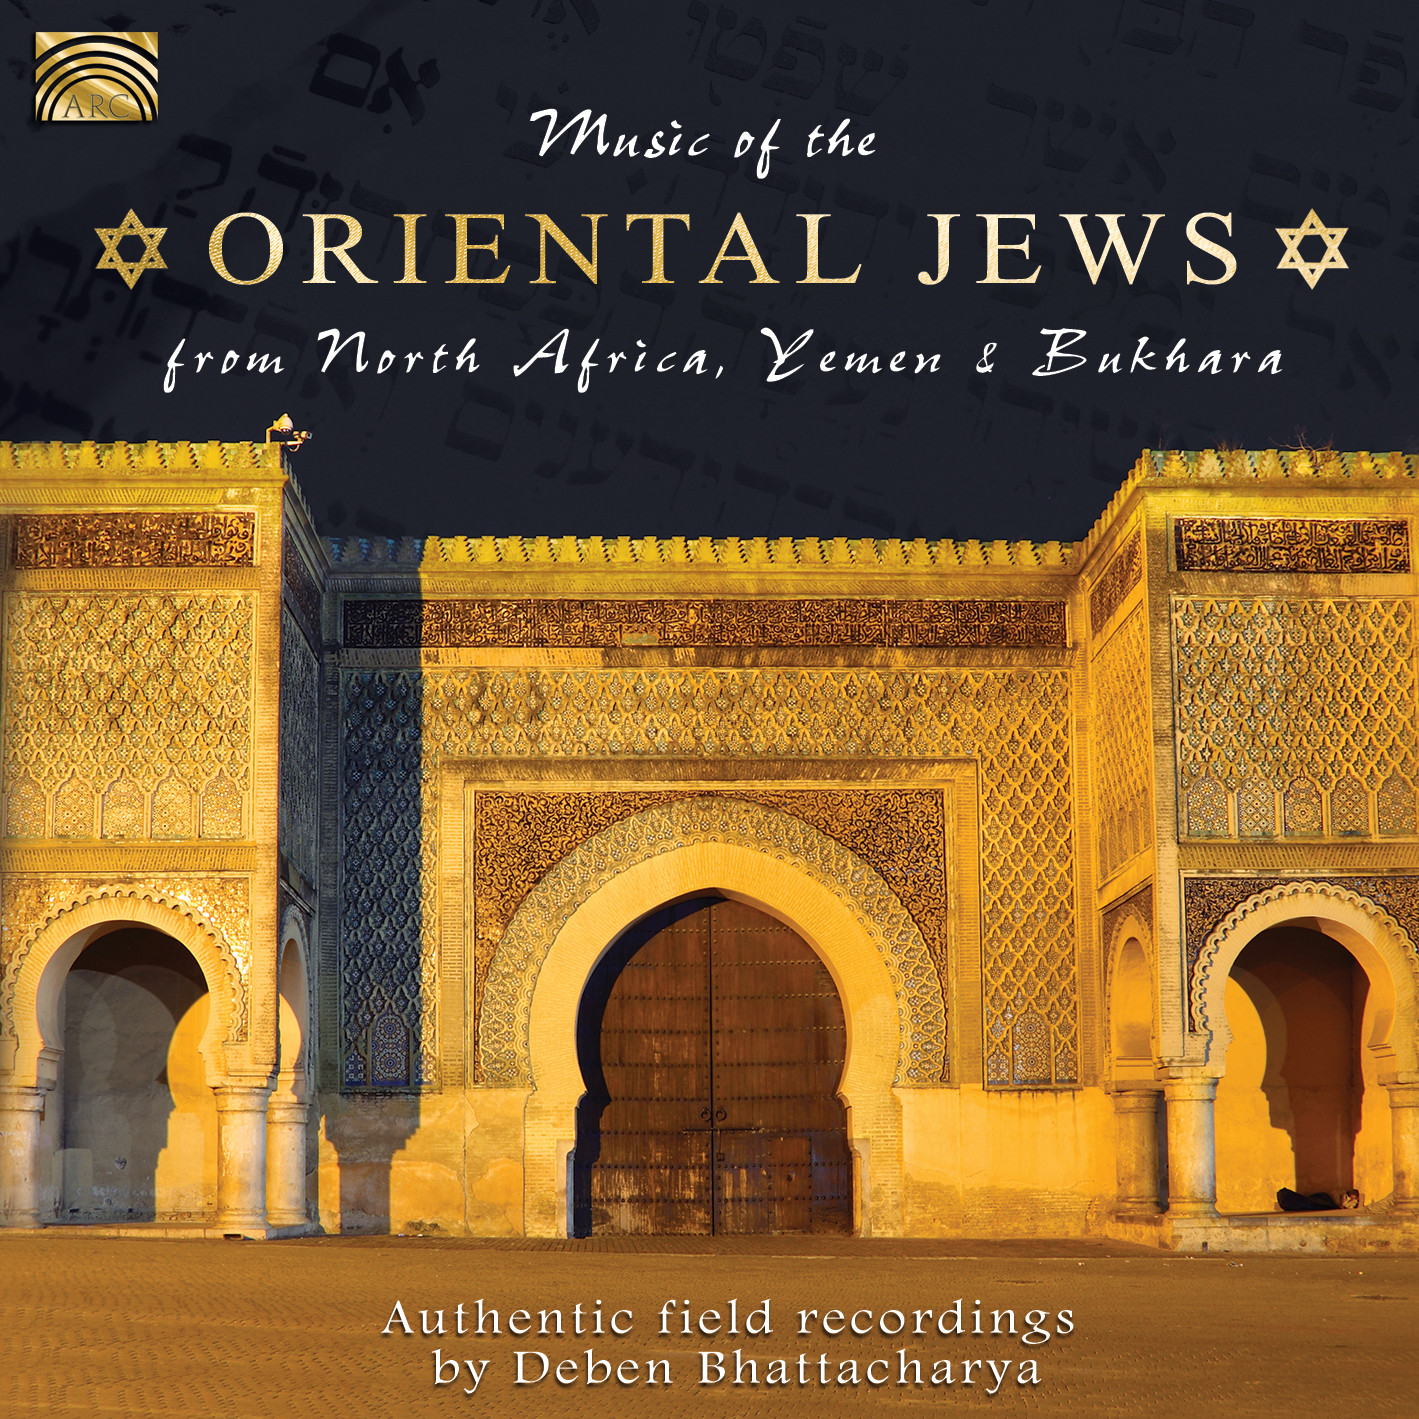 EUCD2513 Music of the Oriental Jews from North Africa, Yemen & Bakhar